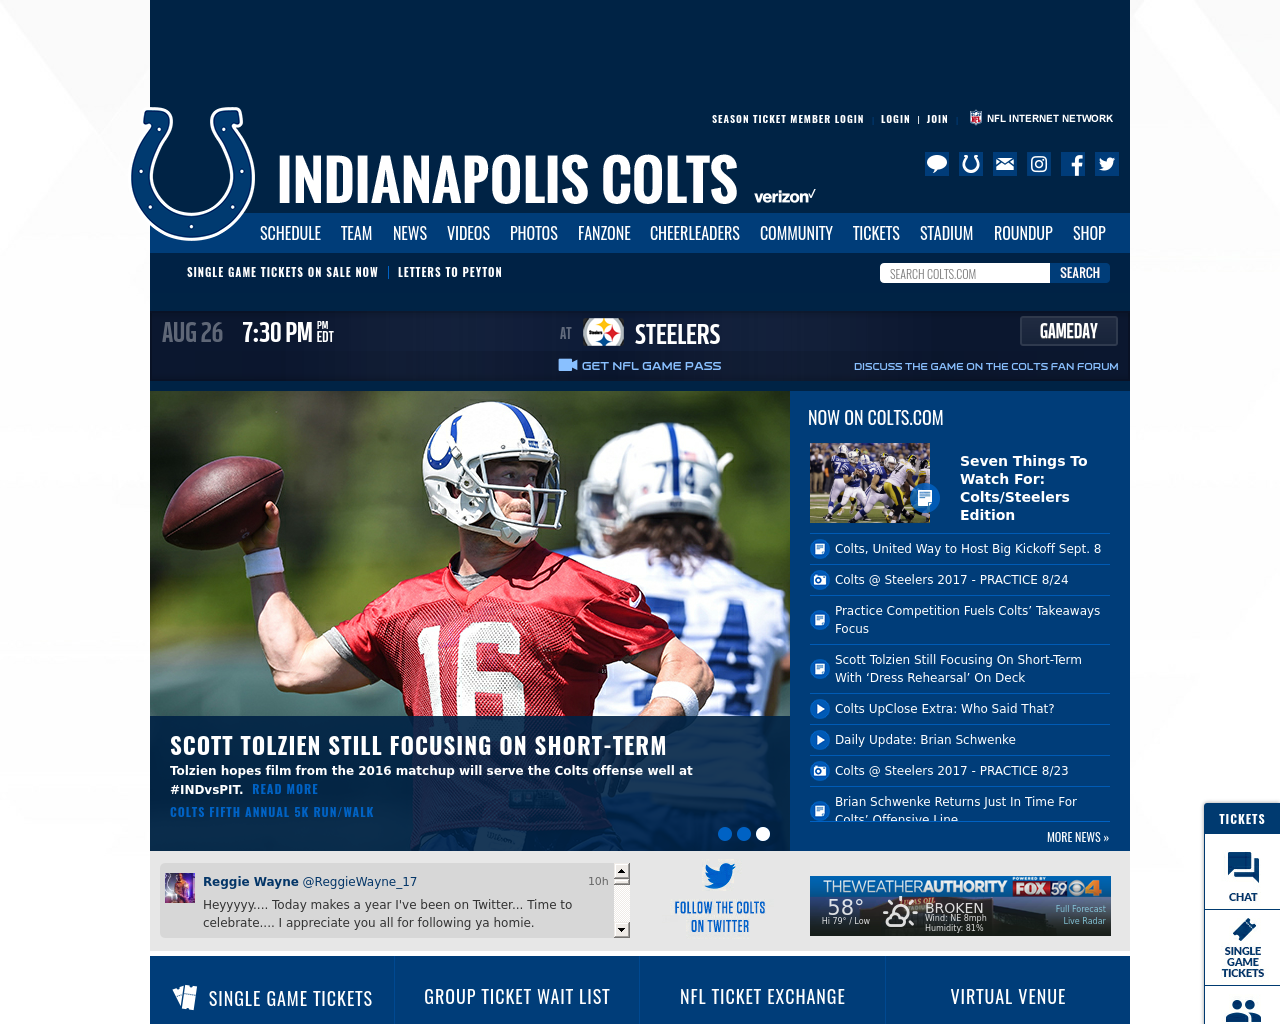 Indianapolis-Colts-Advertising-Reviews-Pricing